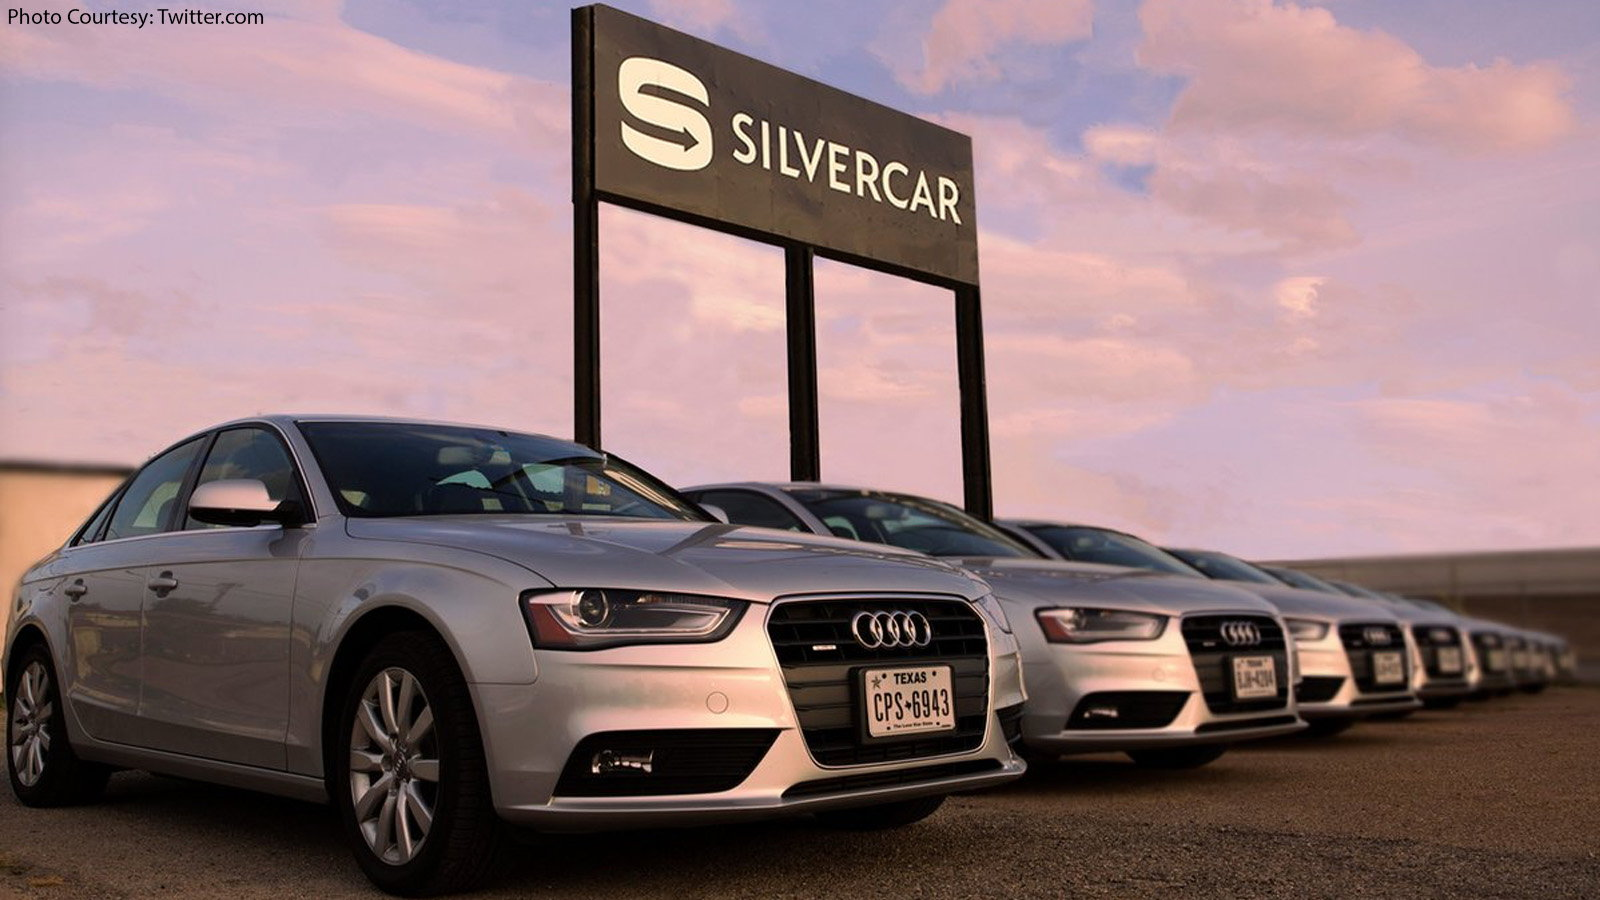 Silvercar The Audi Owned Luxury Car Rental Company Comes To